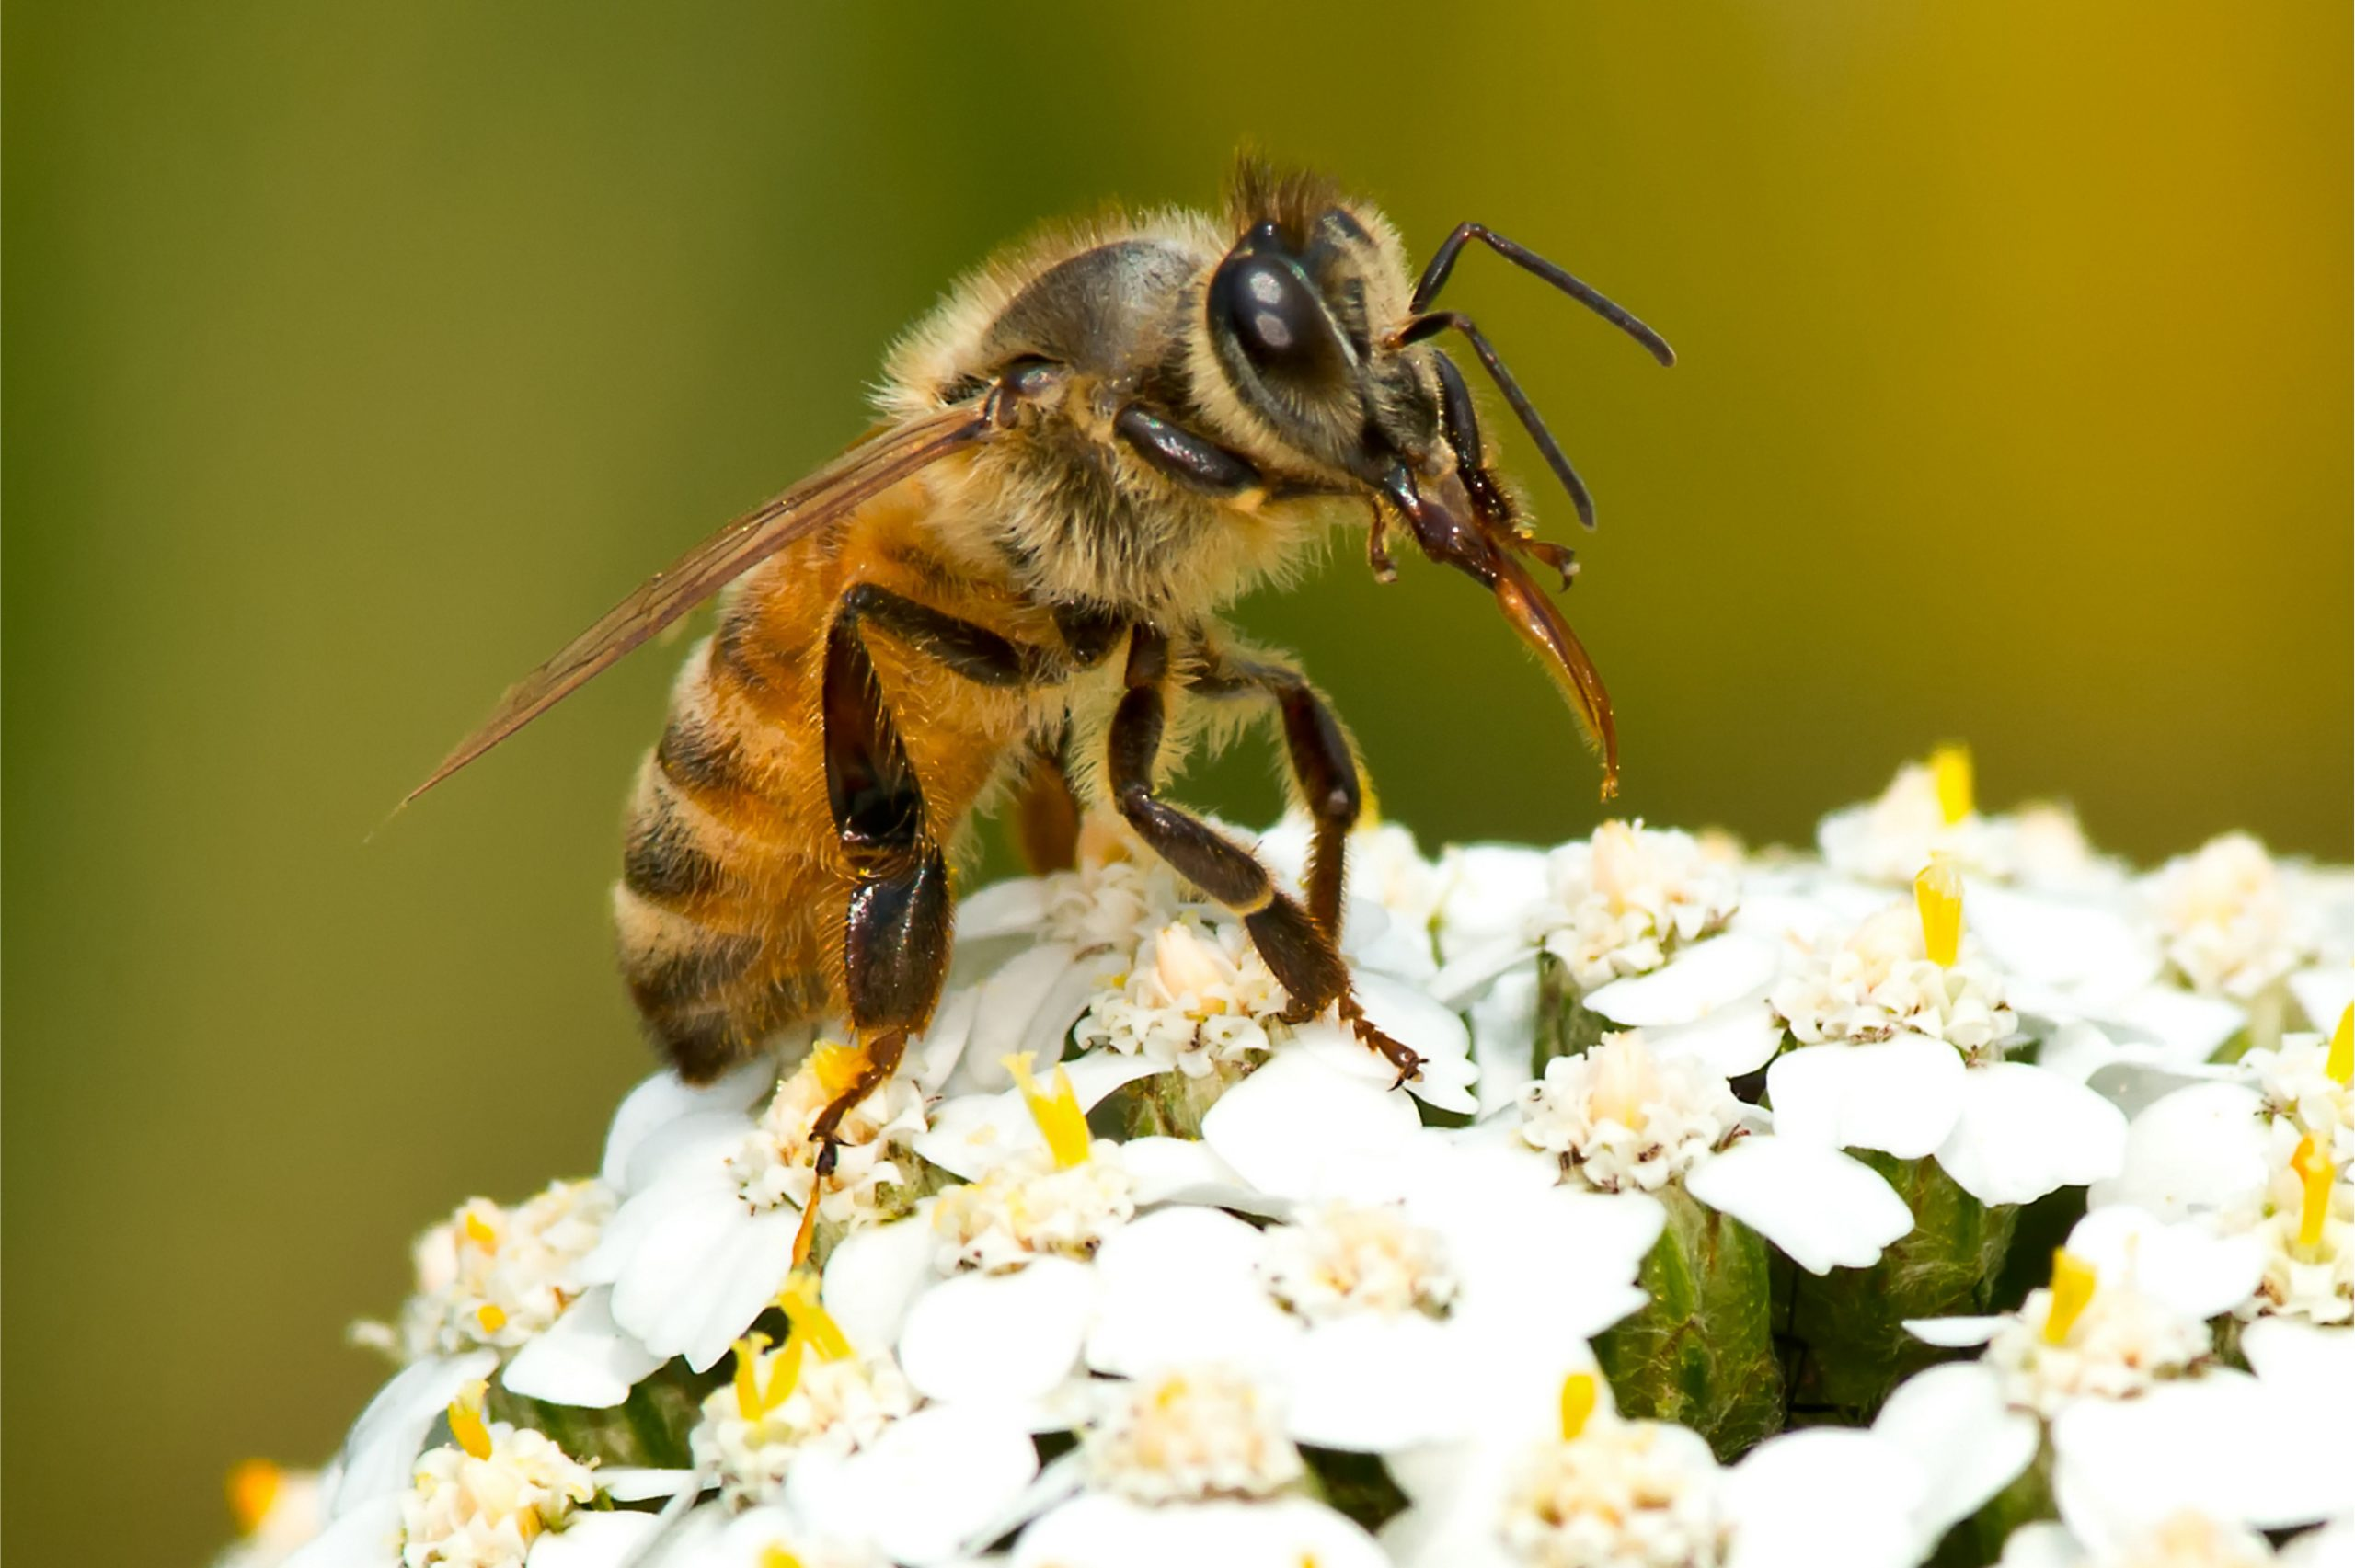 European Honey Bee collecting nectar from a white flower